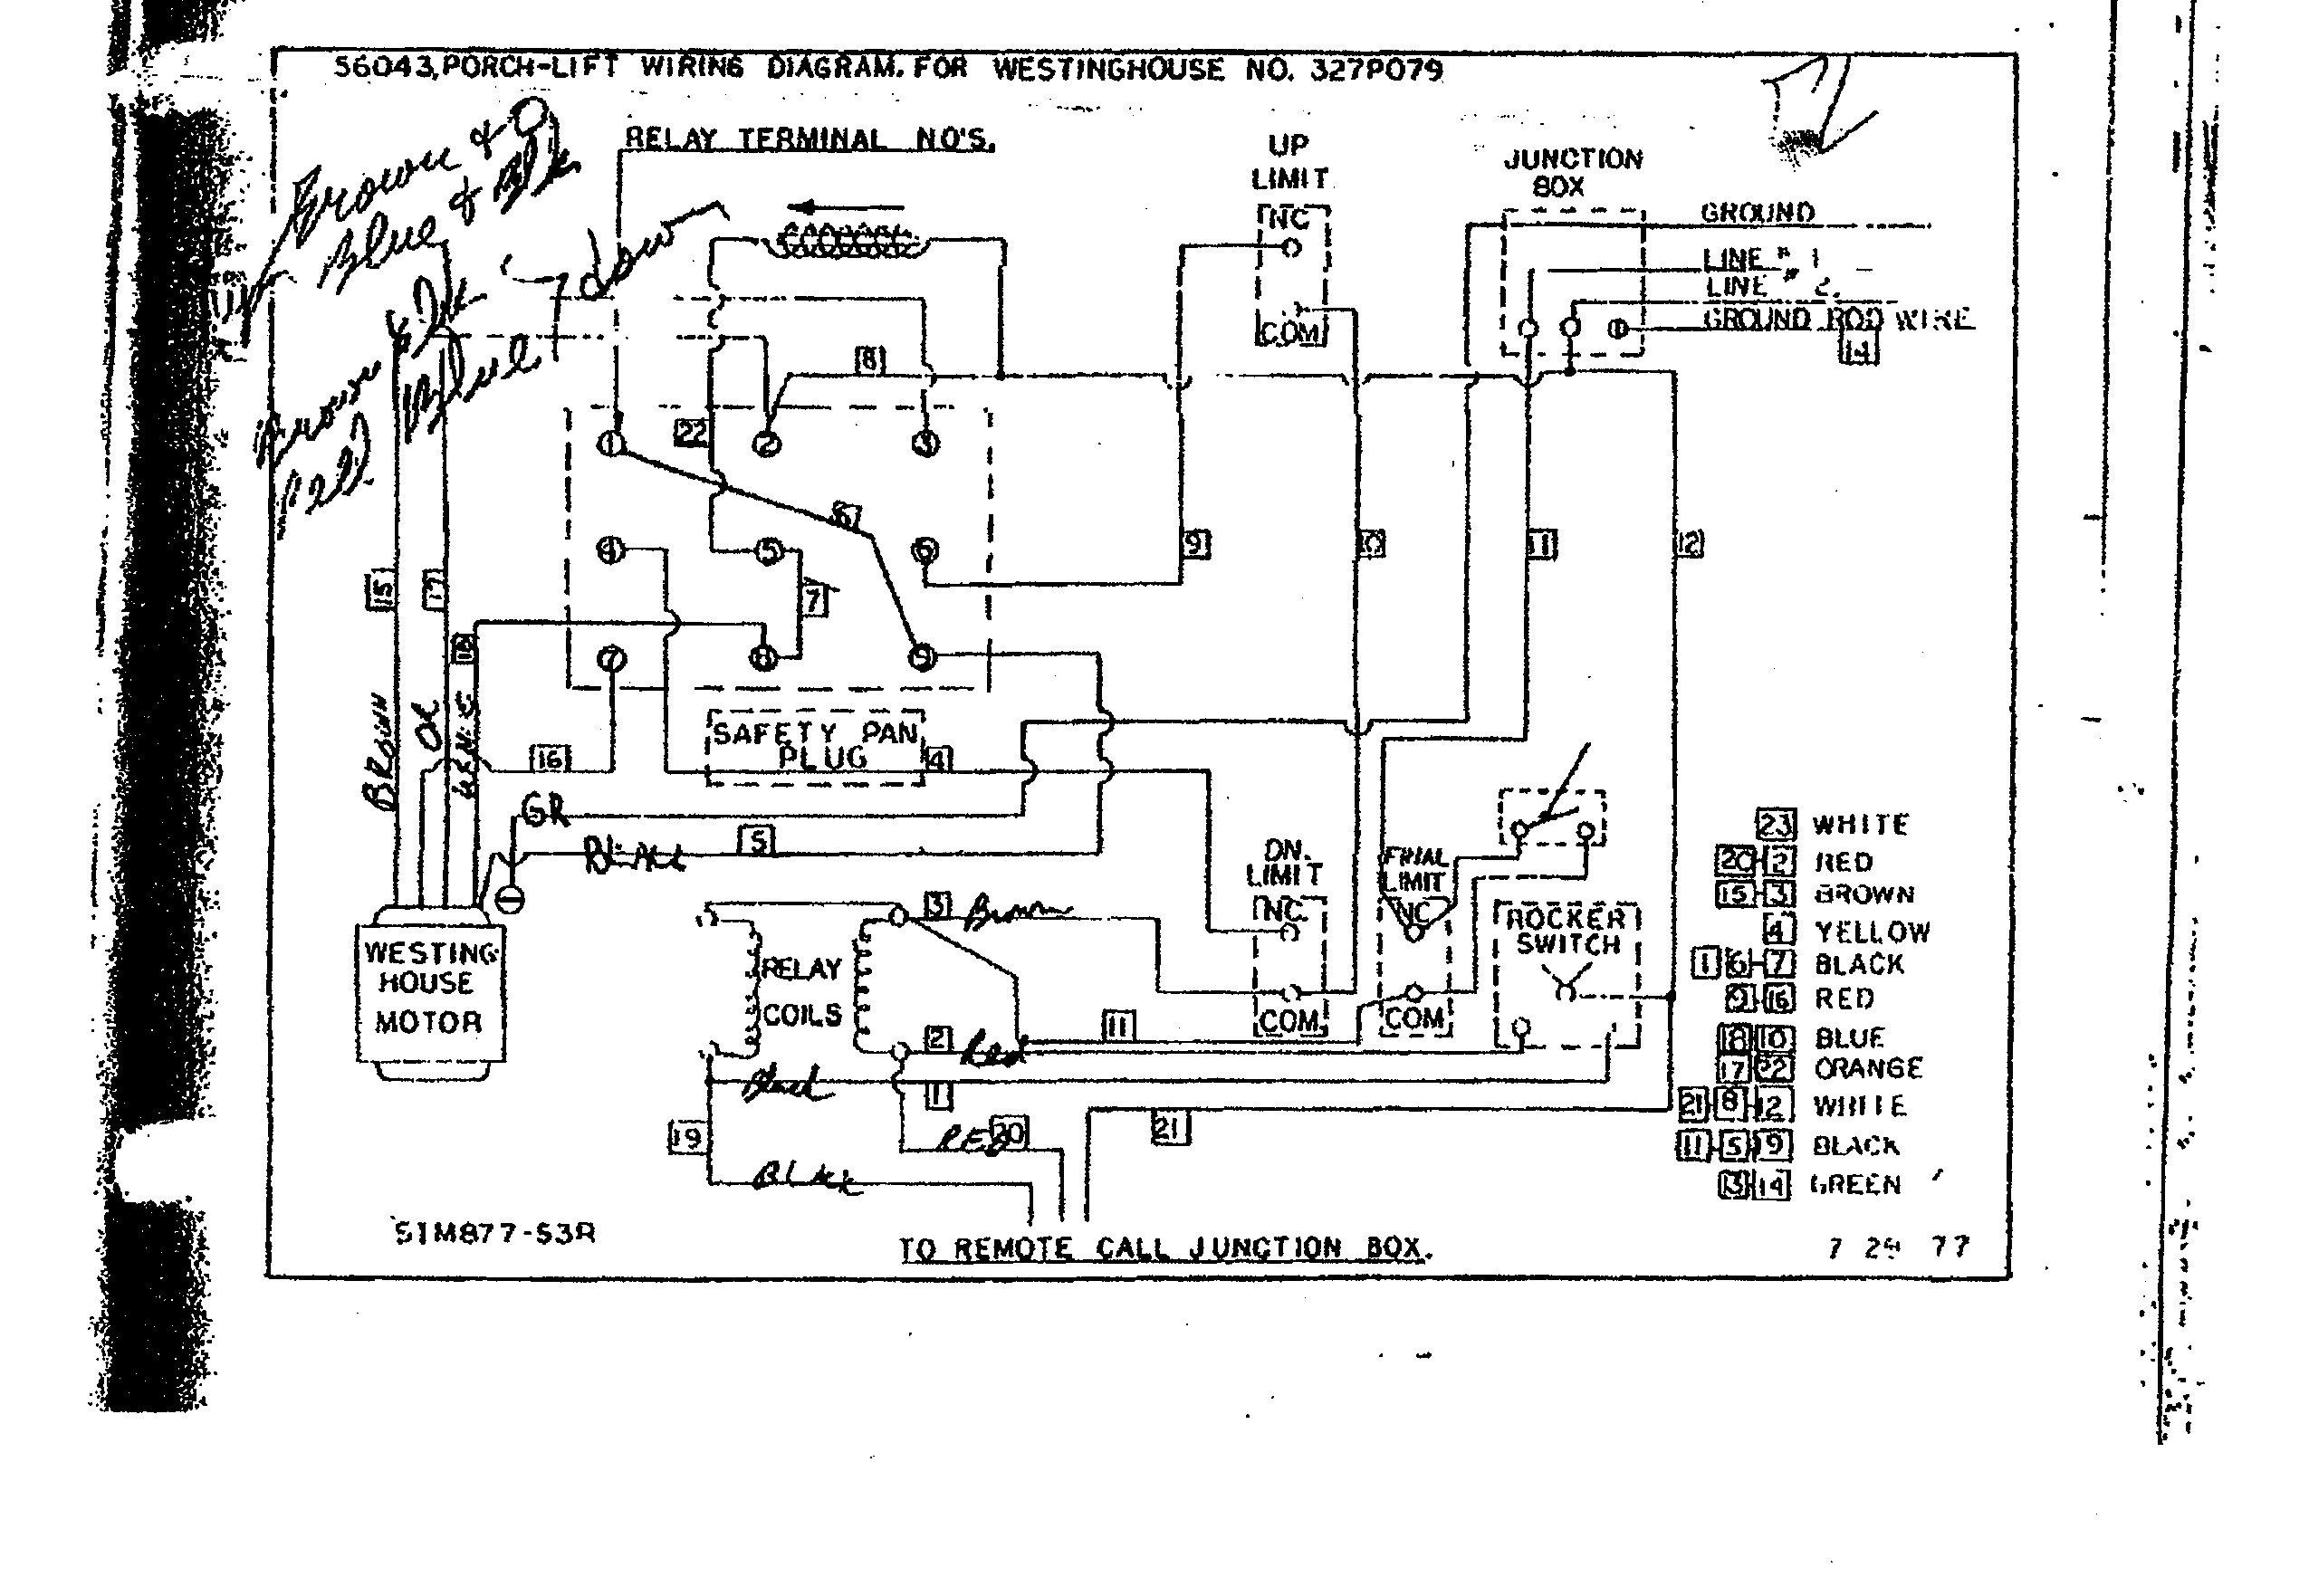 2011 01 04_160748_thyssenkrupp who where can i get help with westinghouse motor wiring? westinghouse ceiling fan wiring diagram at couponss.co